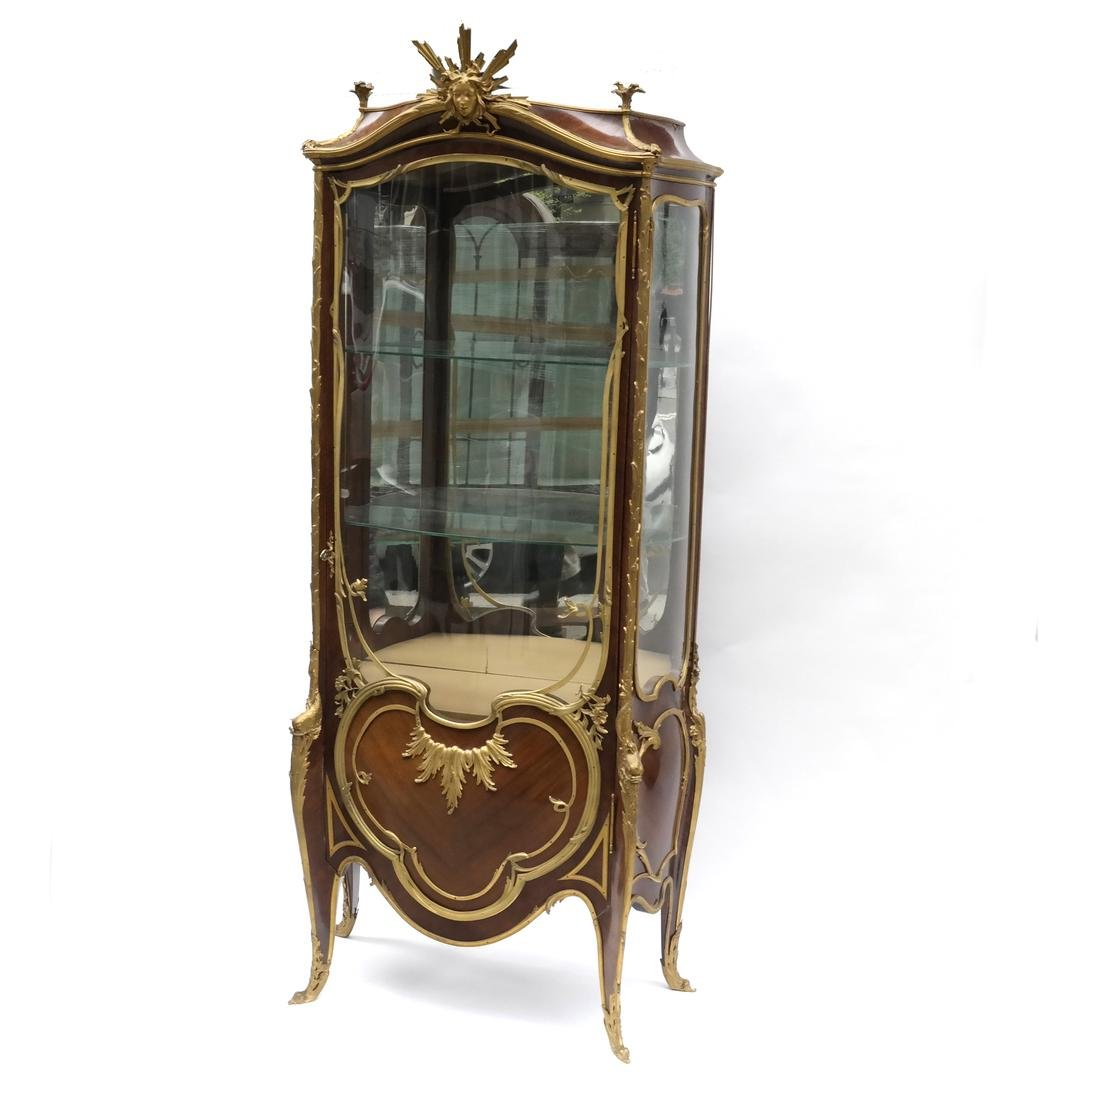 Linke French Gilt Bronze-Mounted Vitrine